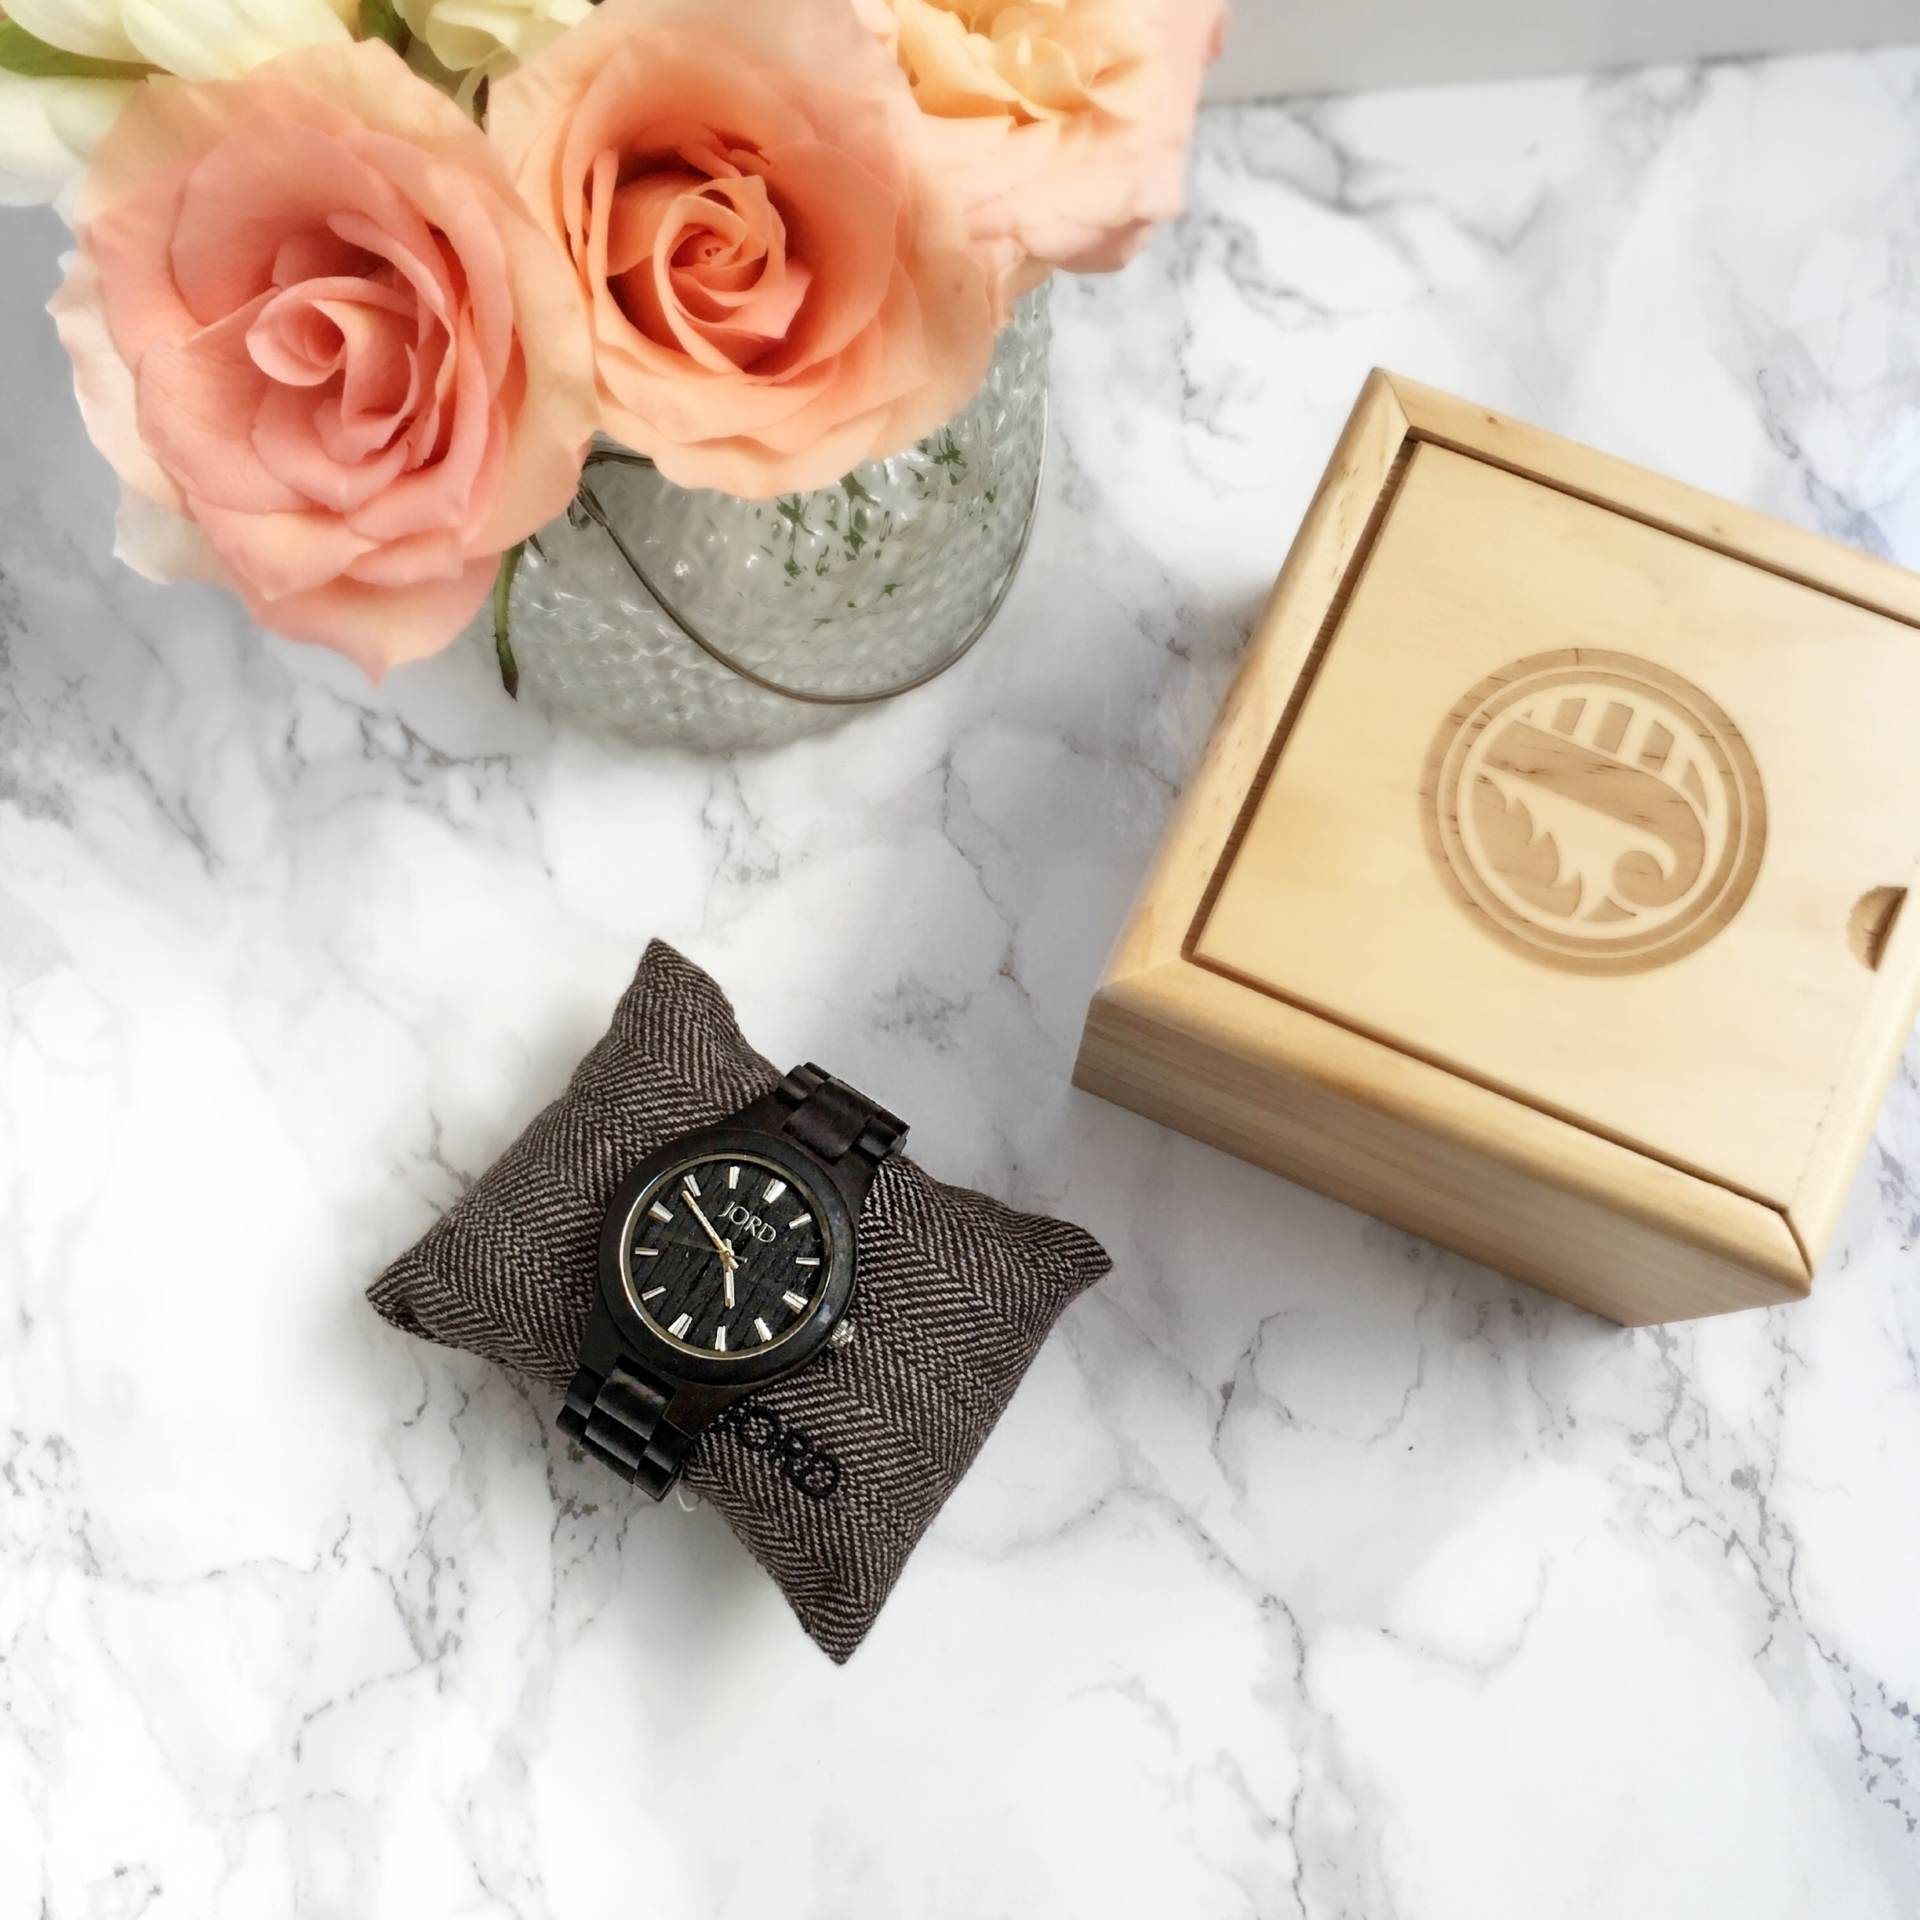 JORD Wood Watches- Le Fab Chic